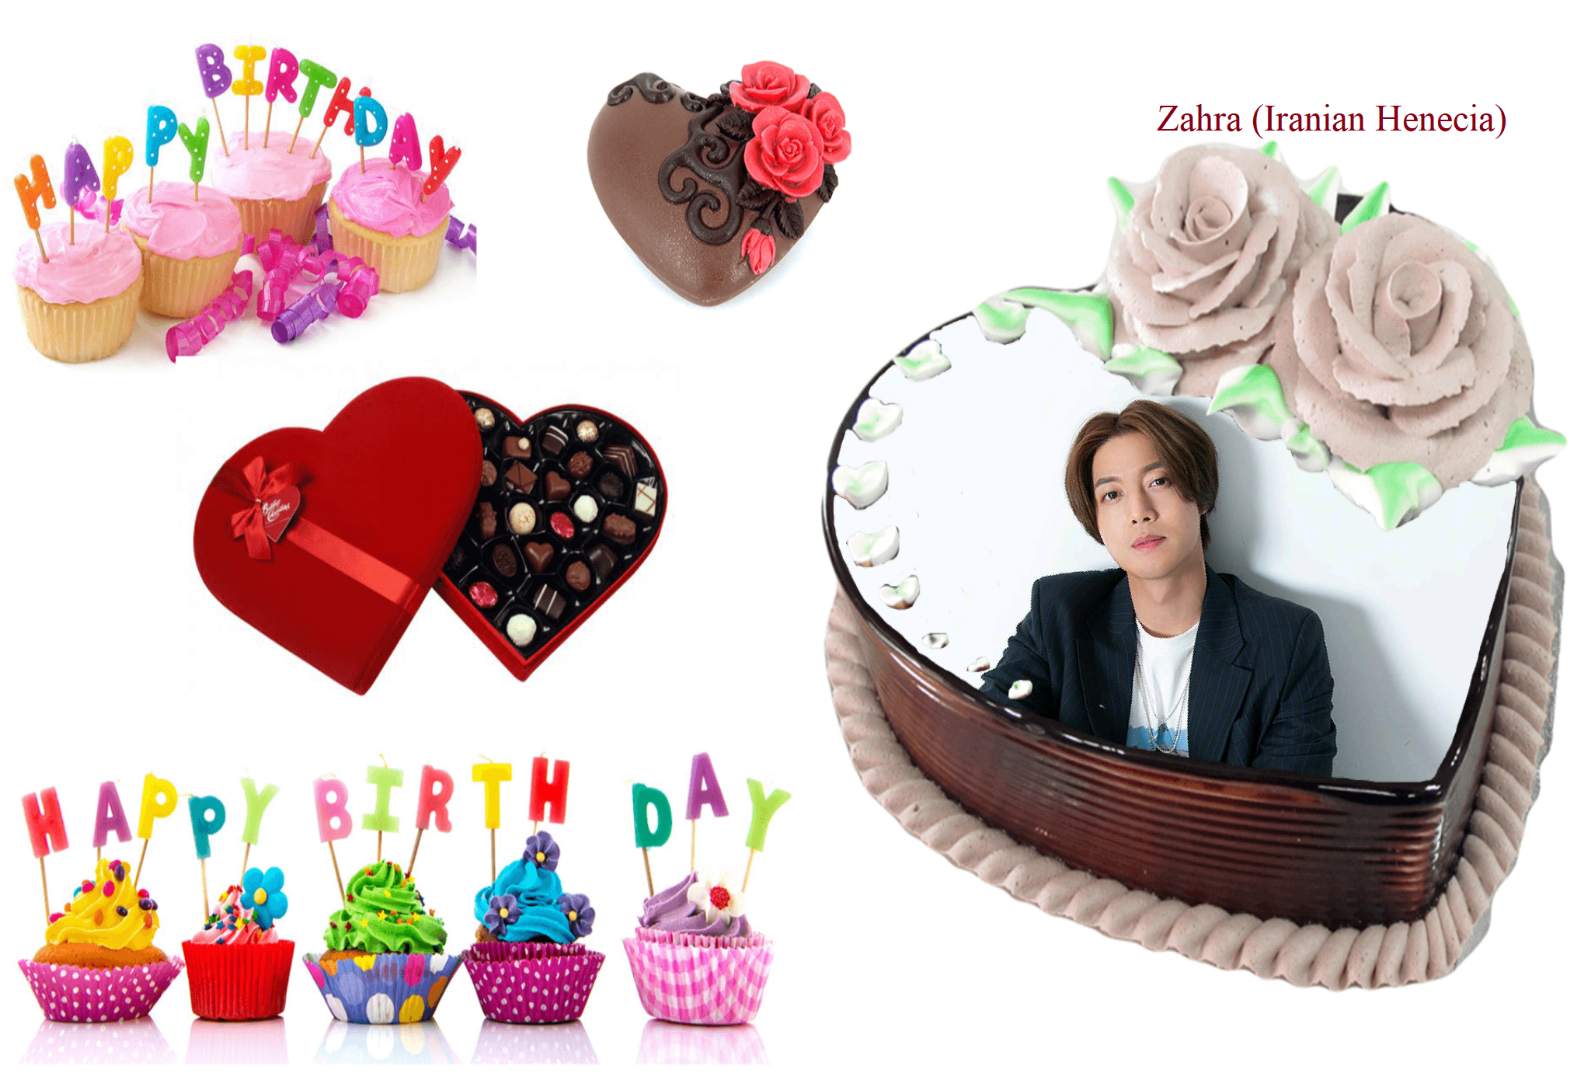 (My Fanart from Happy 32th Birtday of KHJ (11